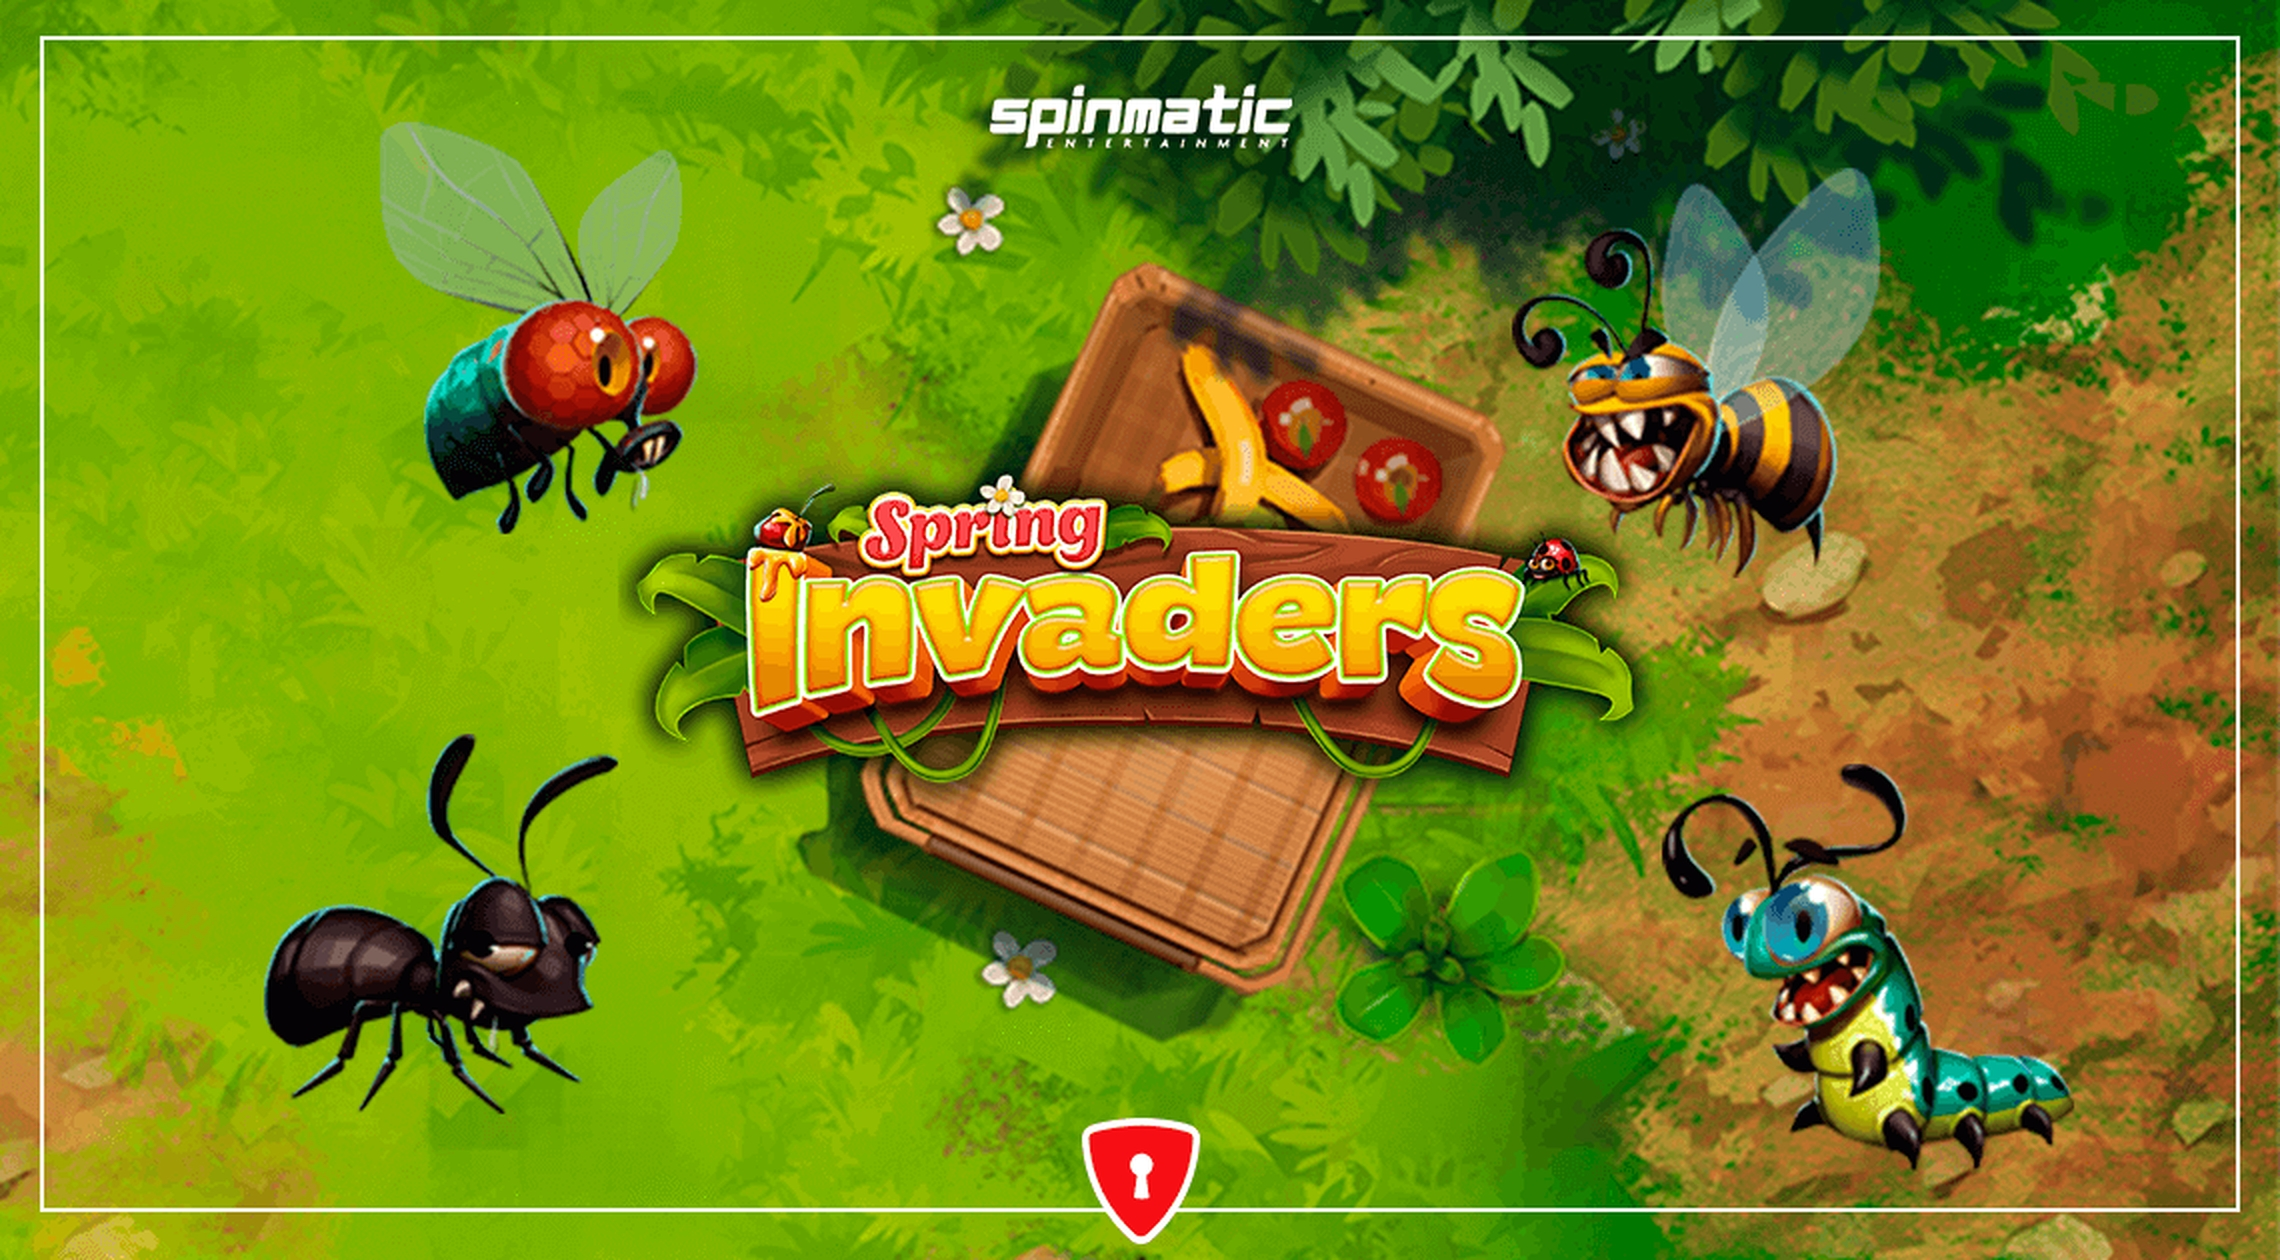 The Spring Invaders Online Slot Demo Game by Spinmatic